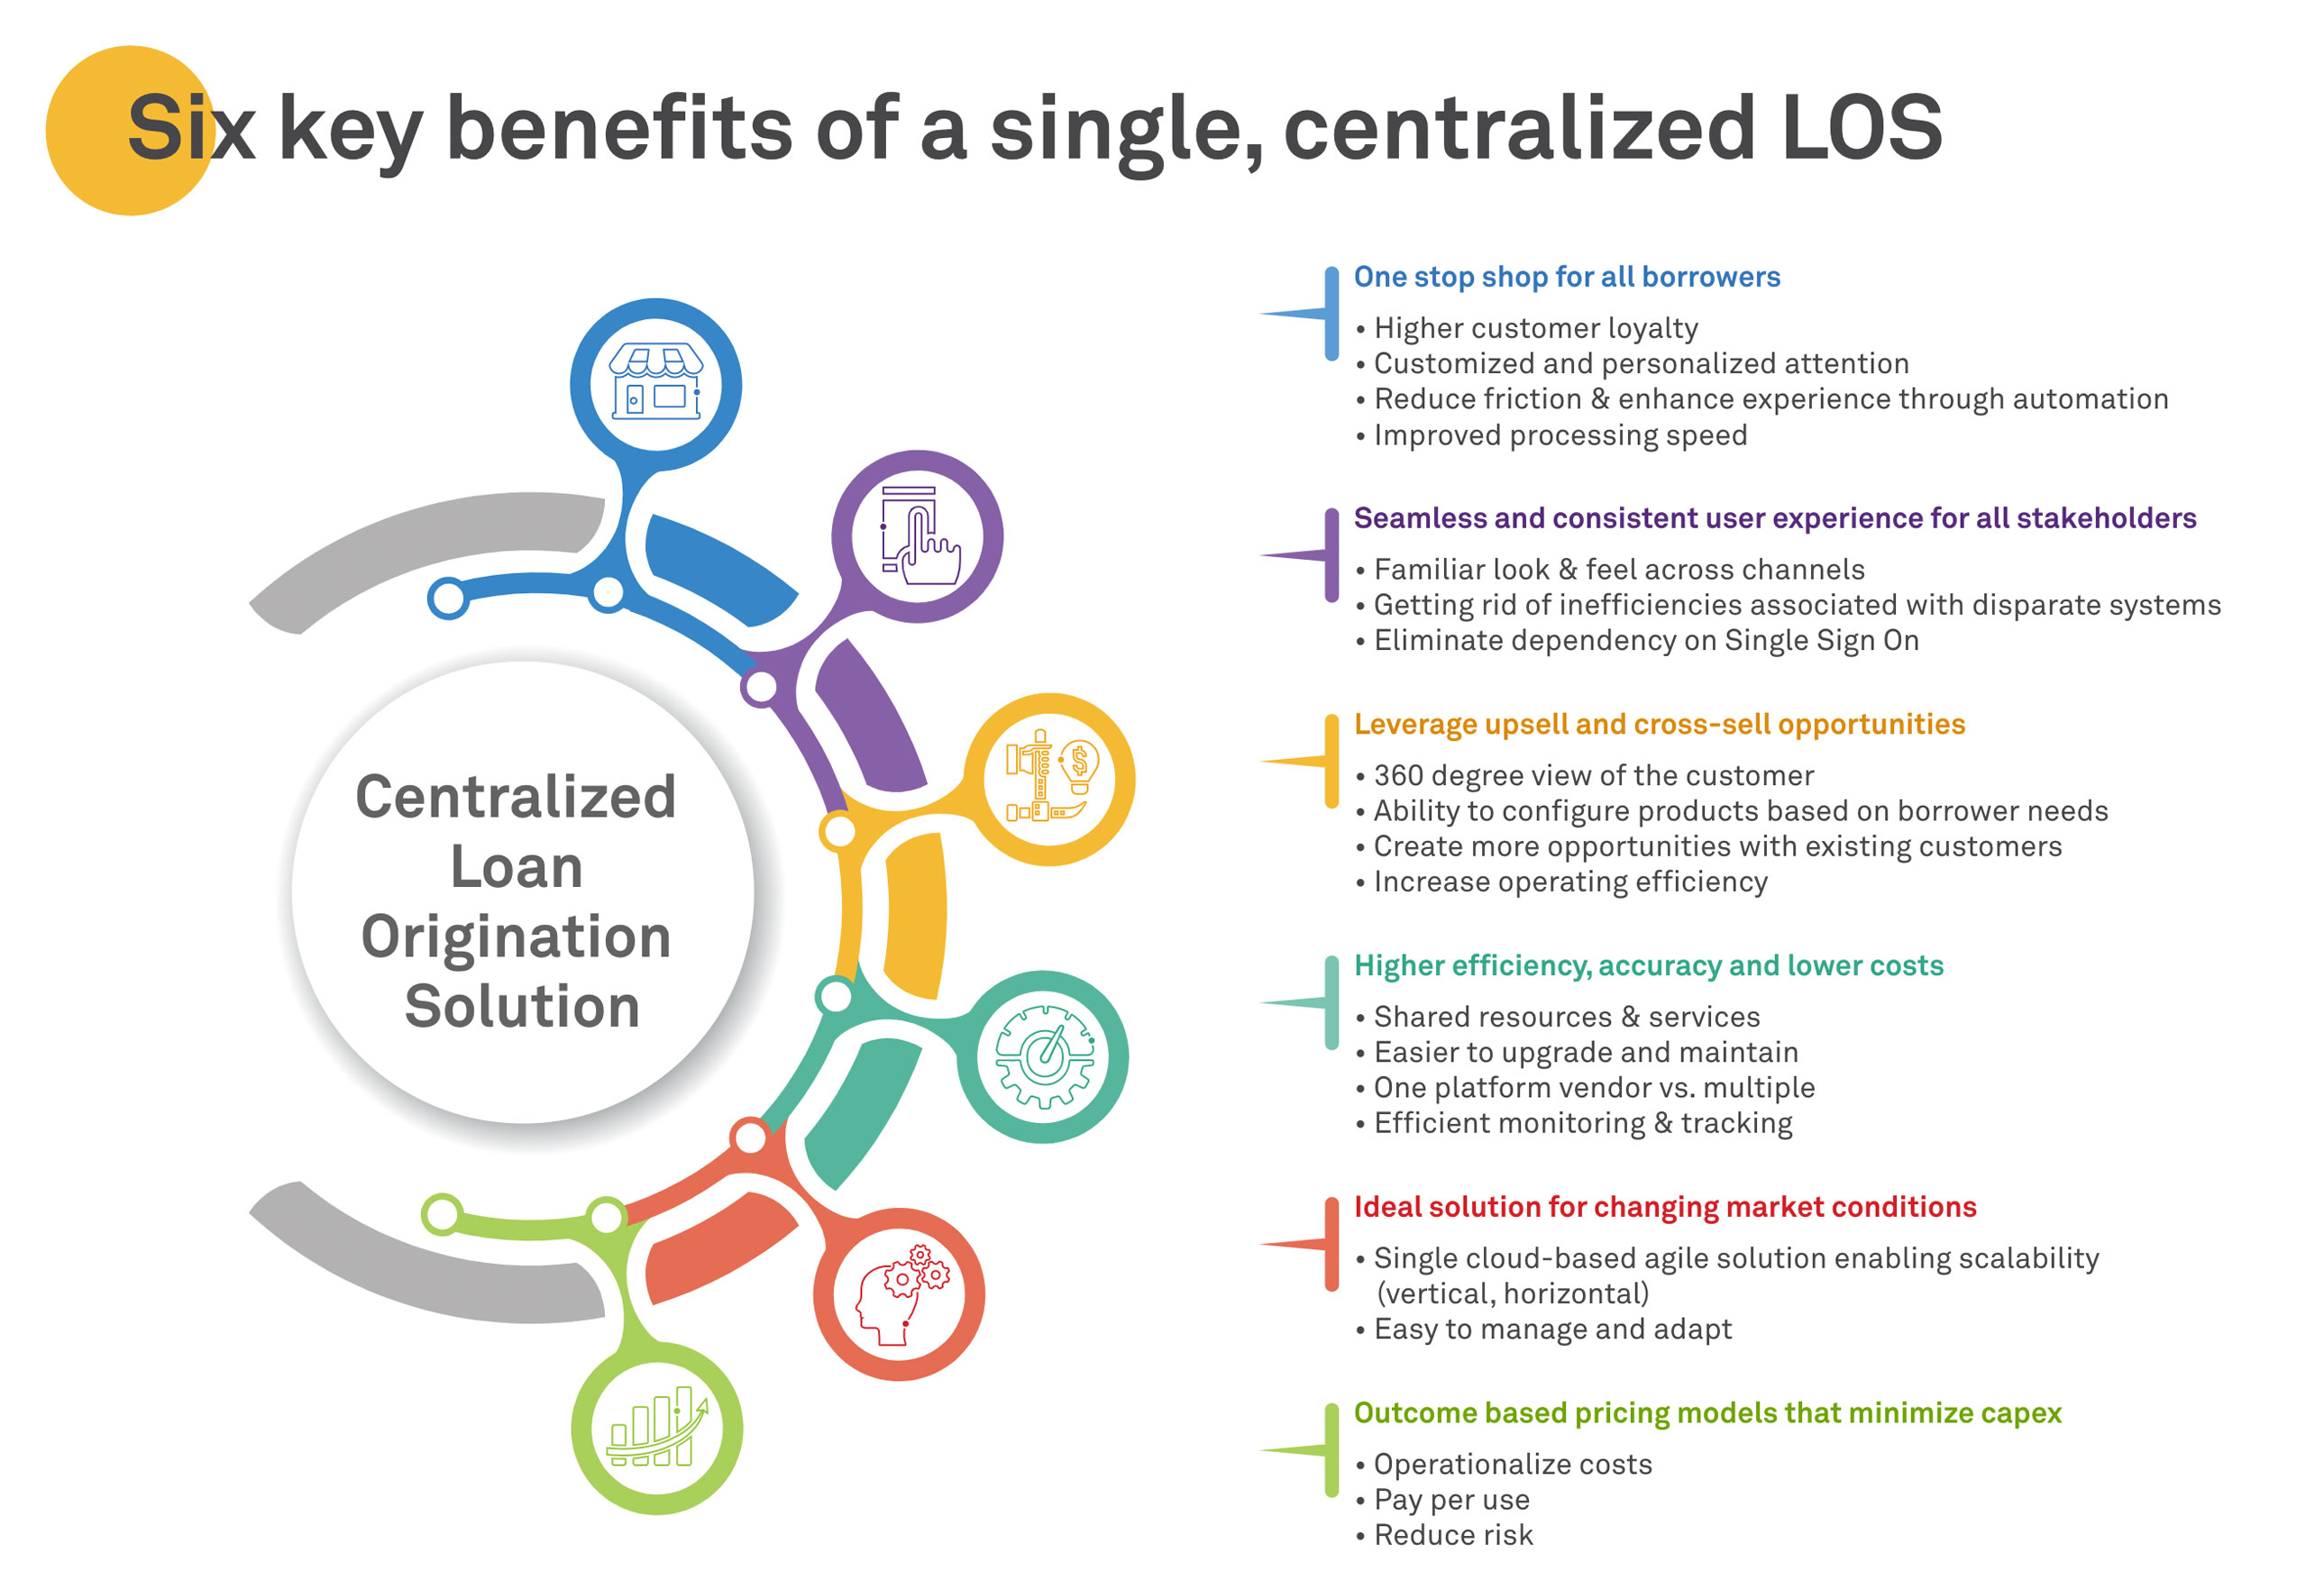 Six key benefits of a single, centralized LOS